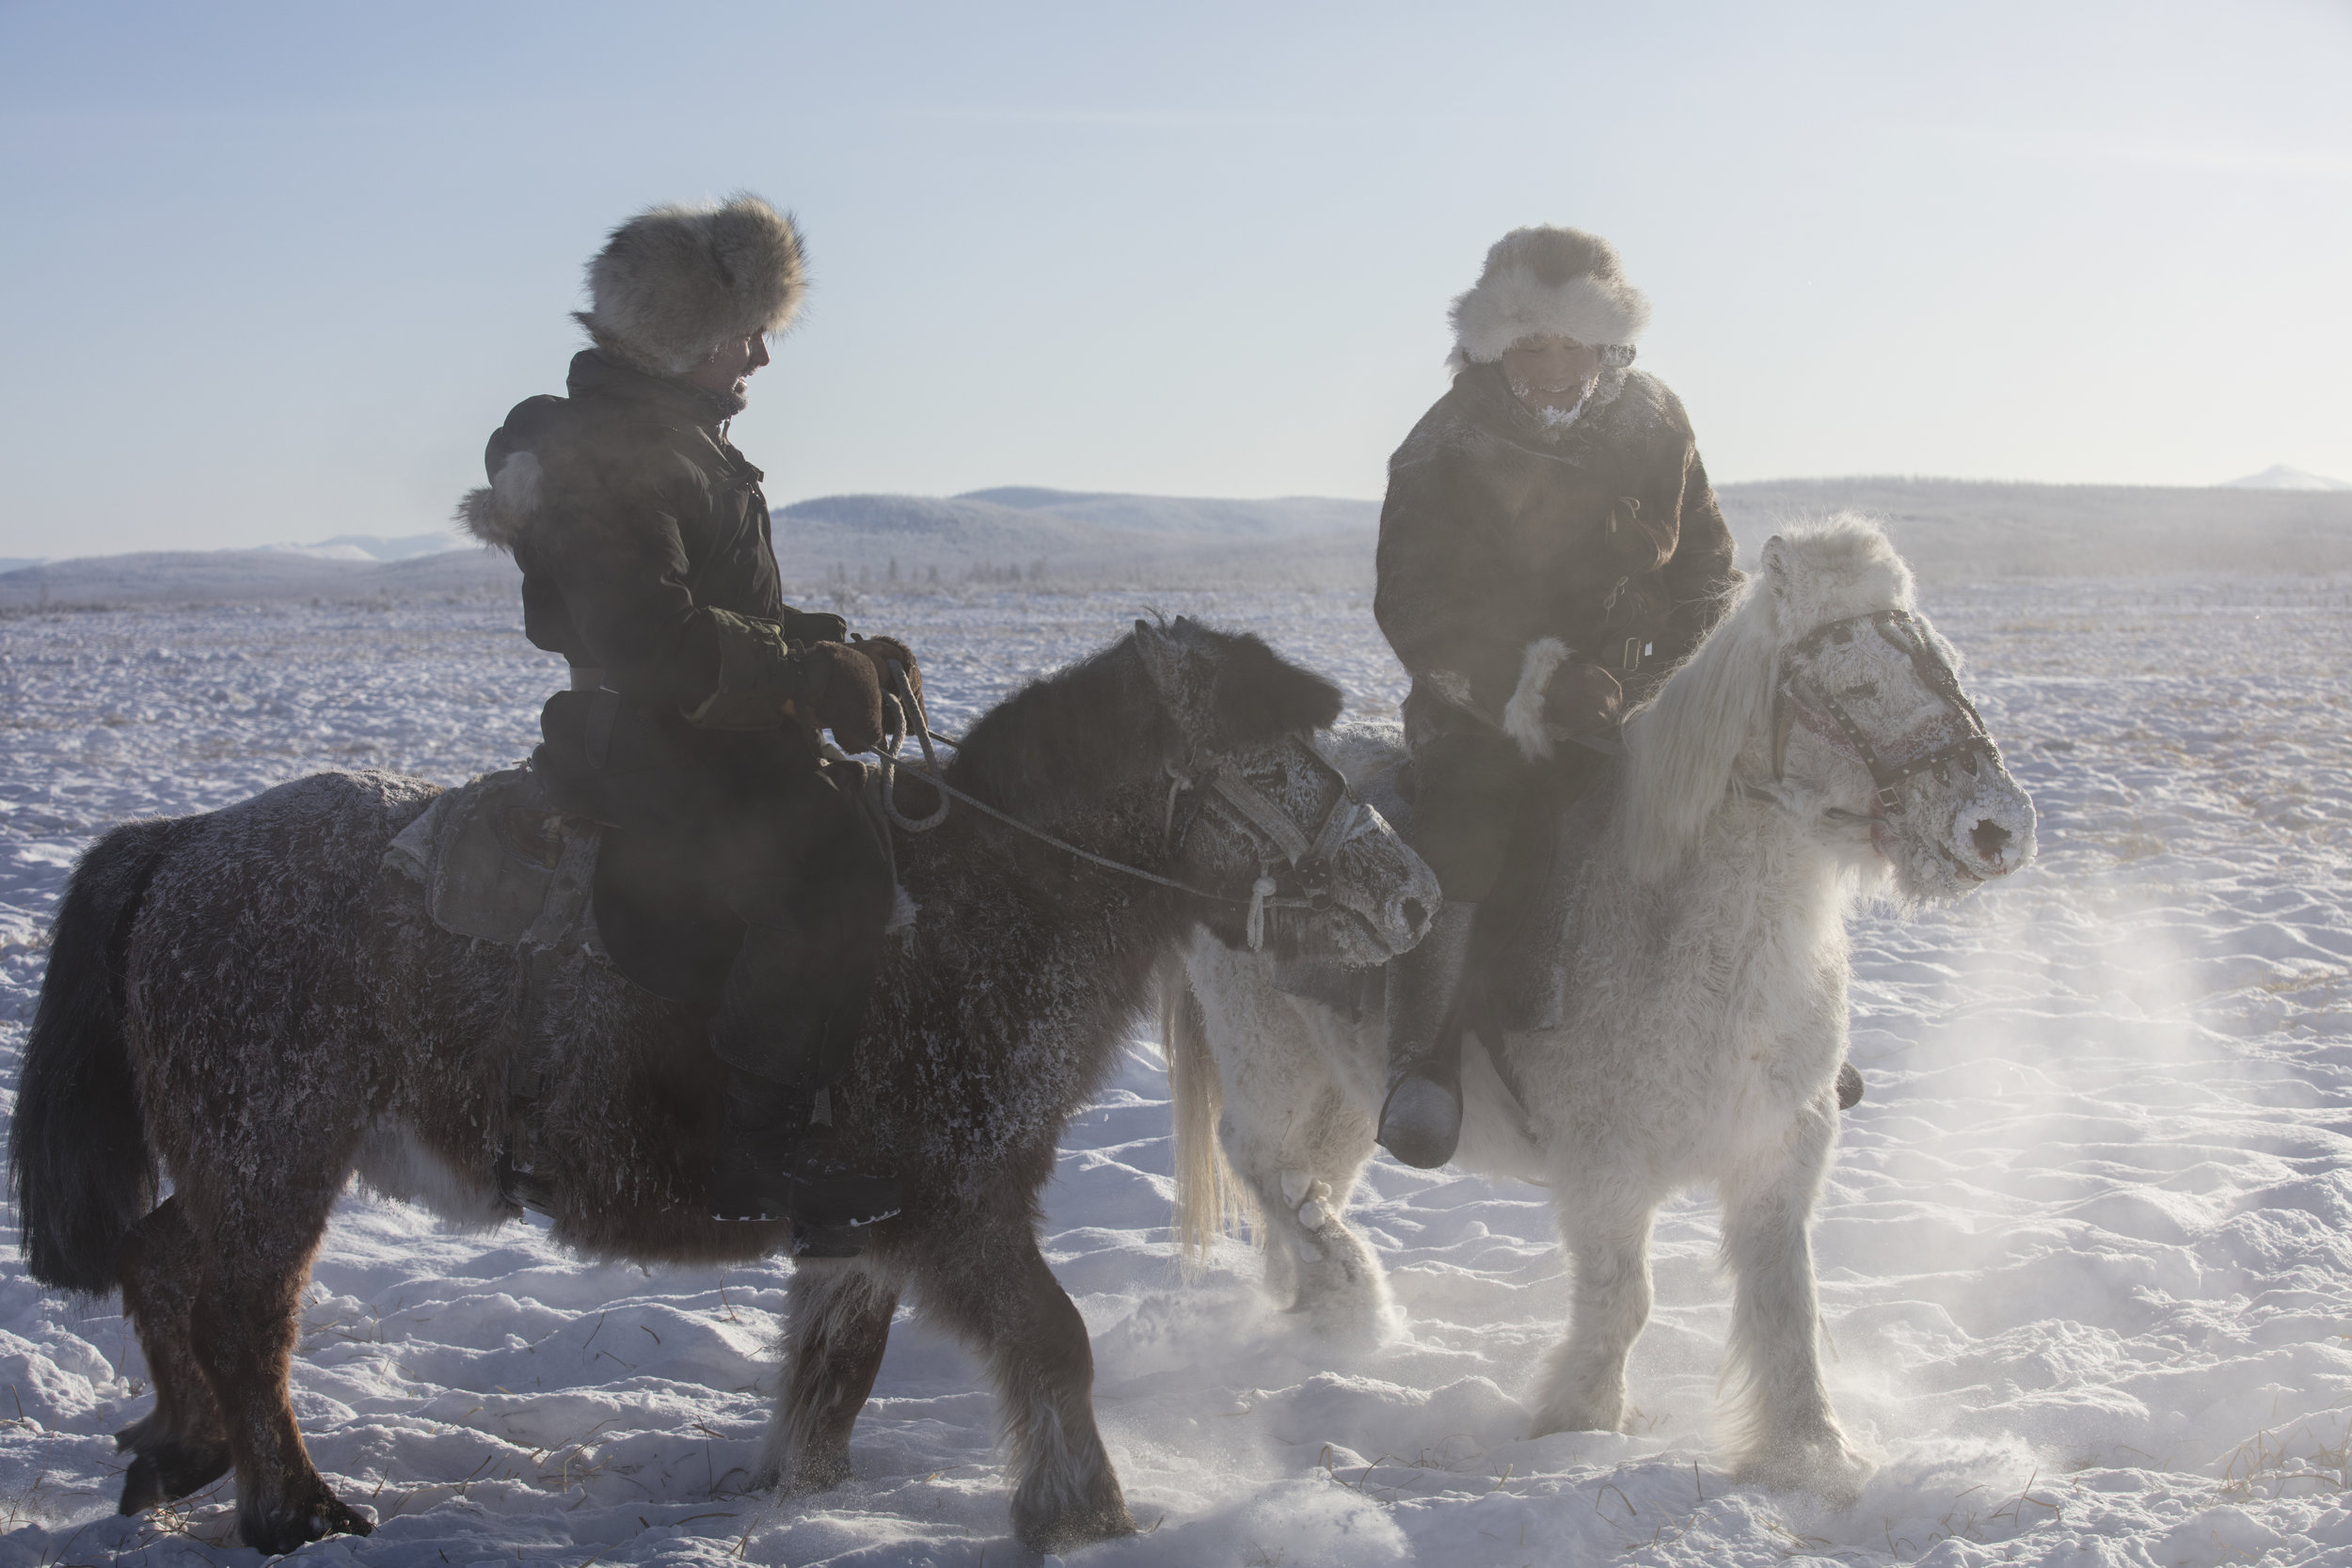 Niobe Thompson (L) with Alexei Vinokurov on Yakutian Horses near Oymyakon, Siberia, -45C.jpg